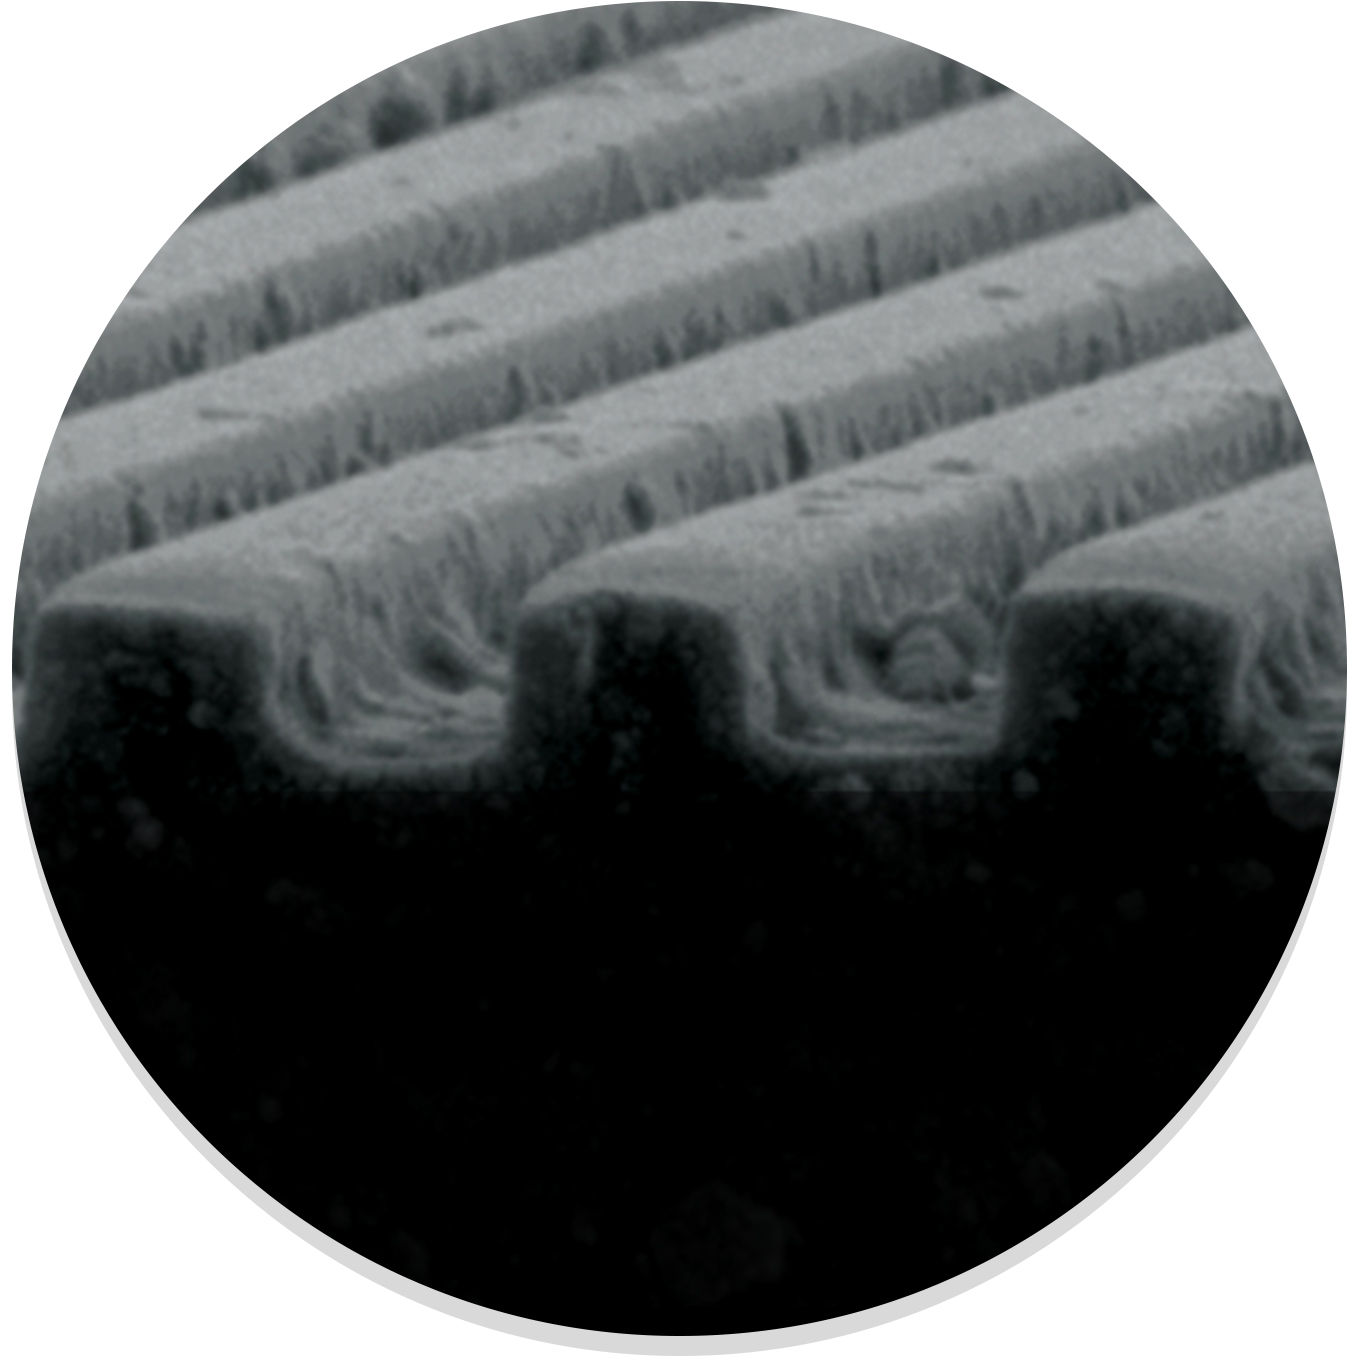 SEM Micrograph of NanoSurface Topography